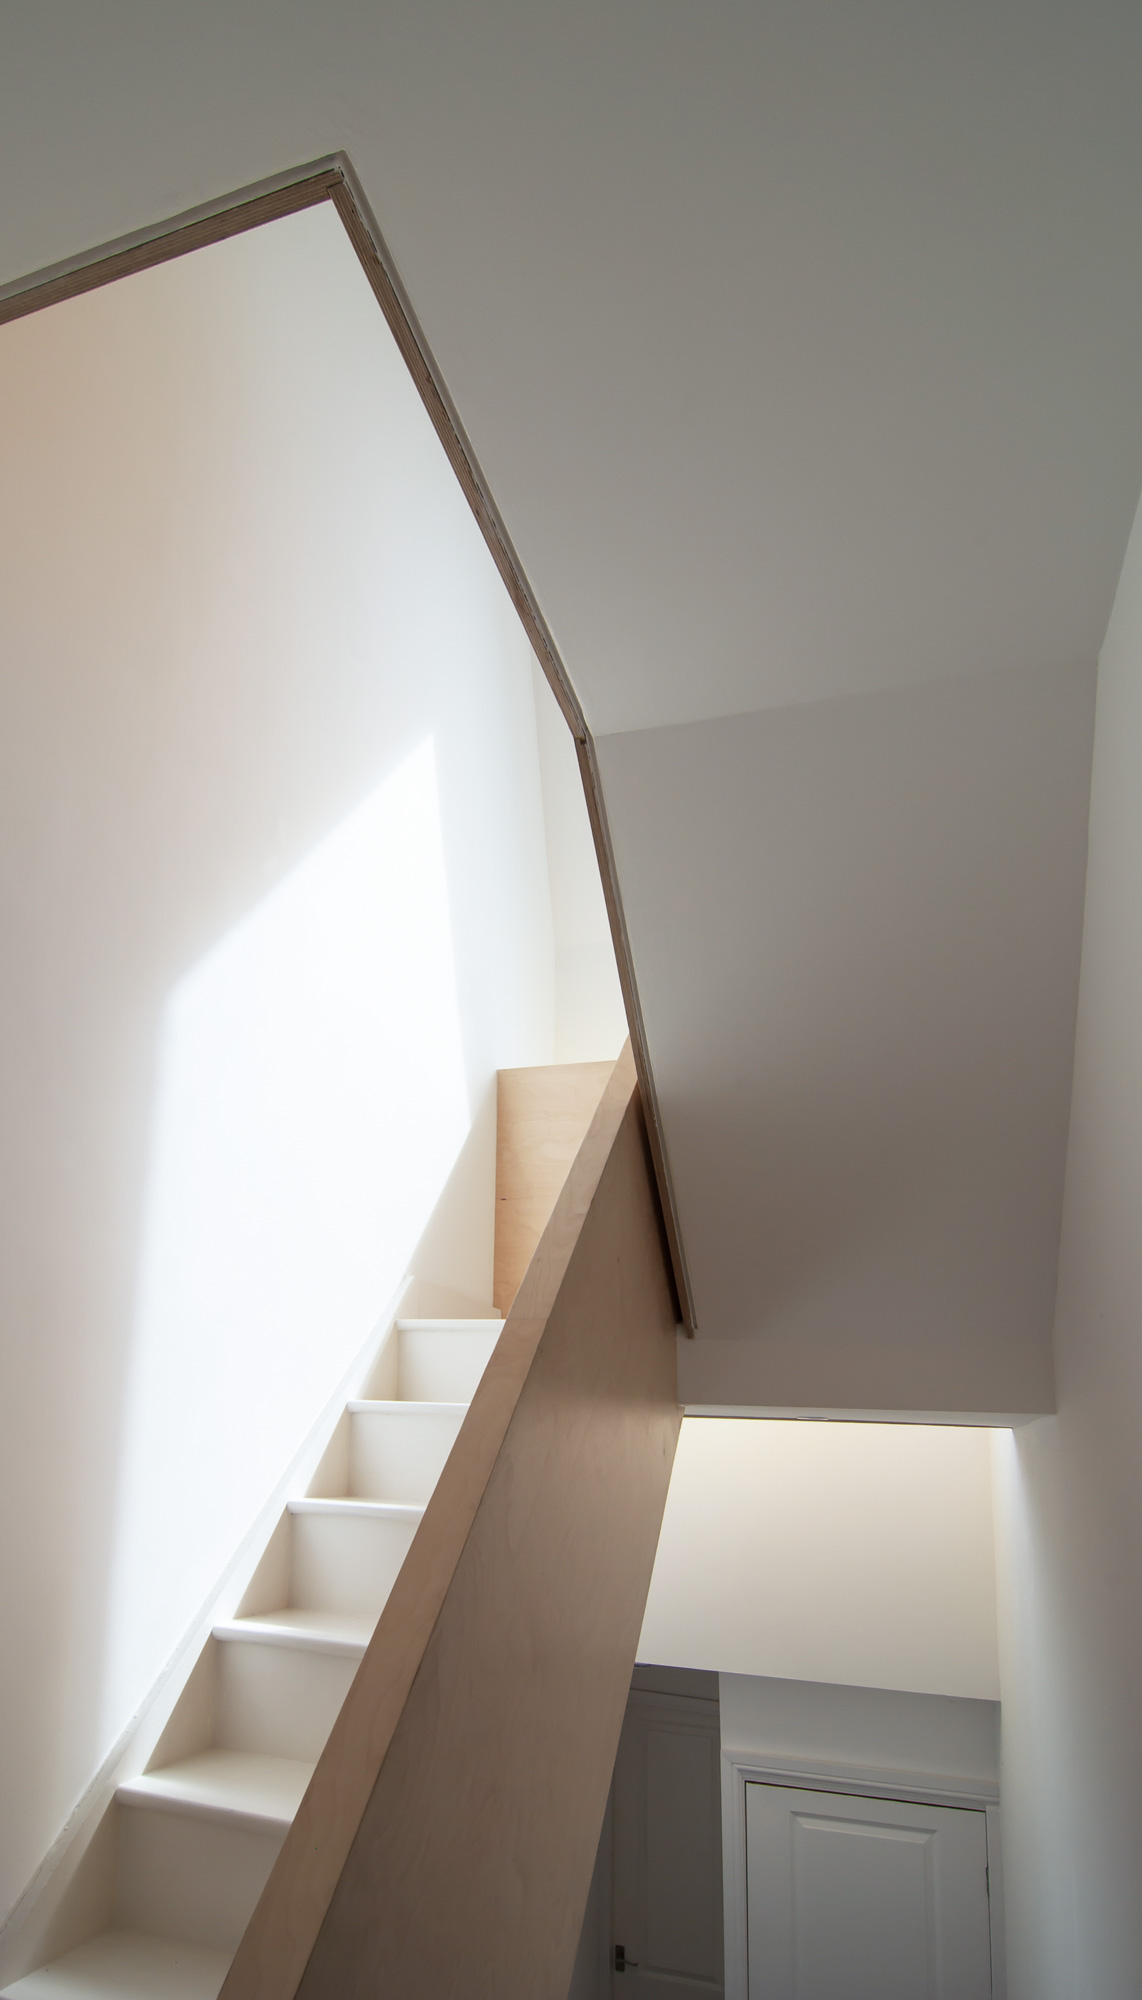 The contrast of the plywood balustrade and white staircase and walls.